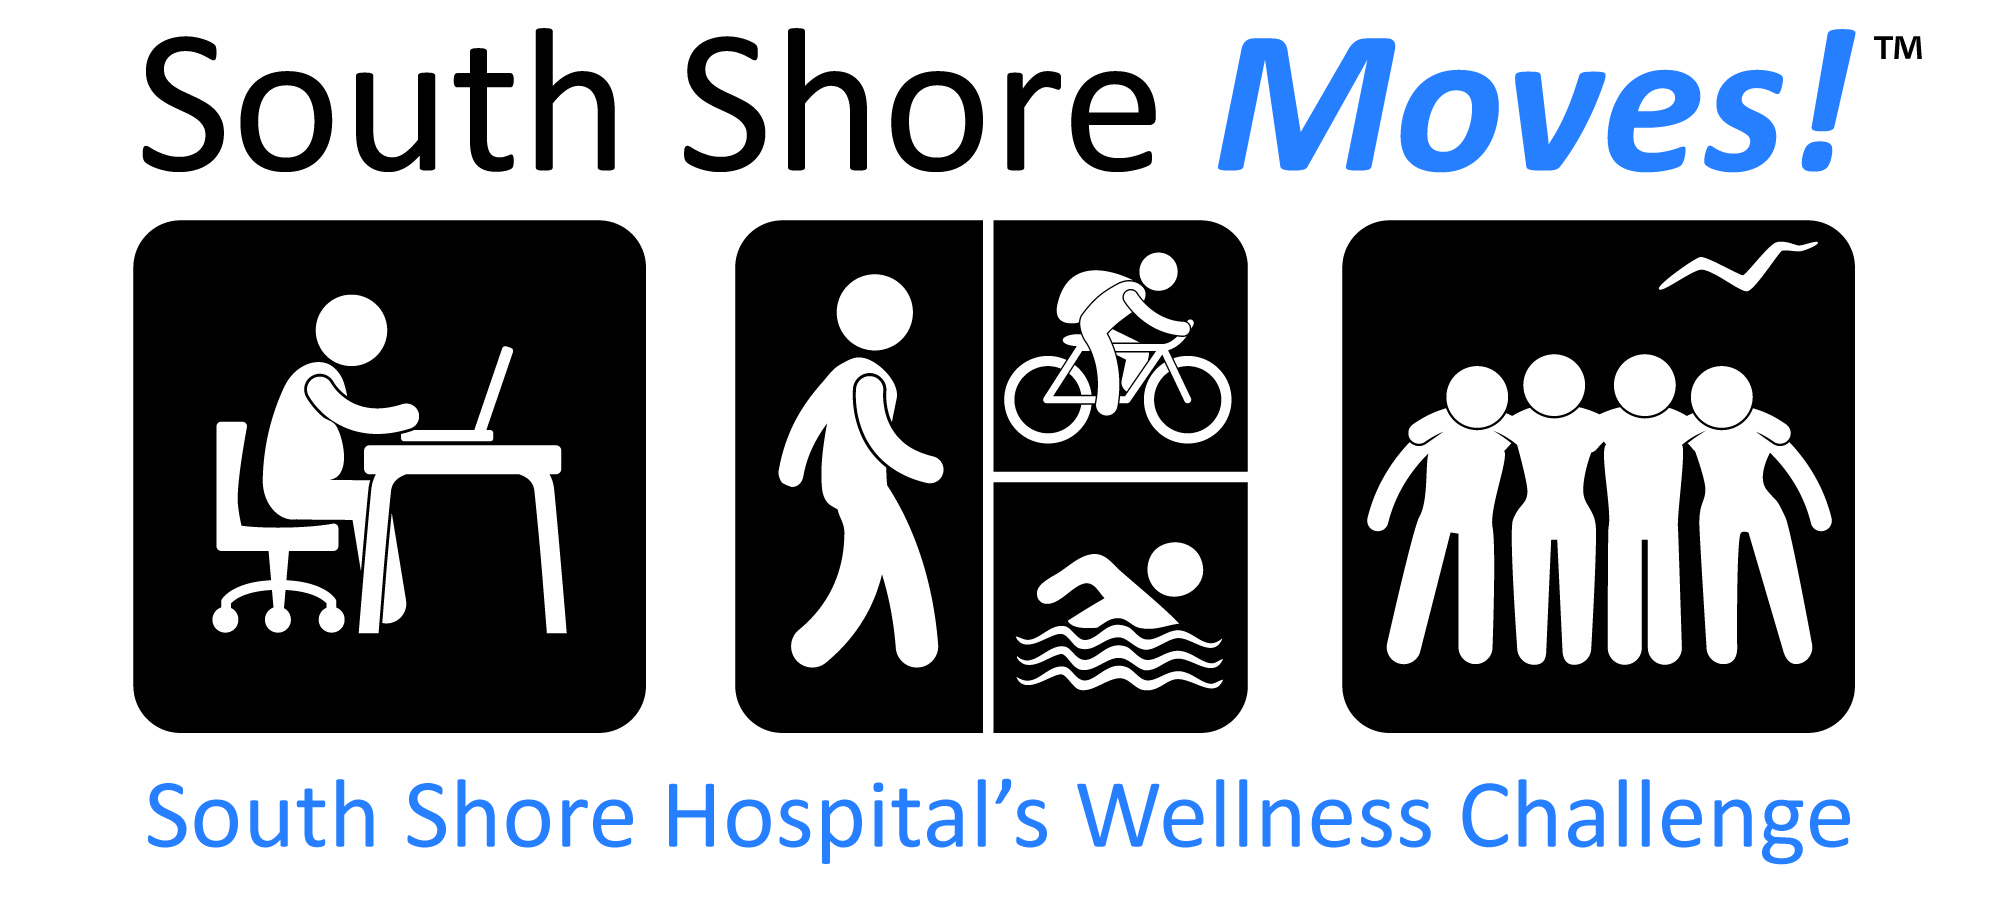 South Shore Moves! logo, program of South Shore Hospital